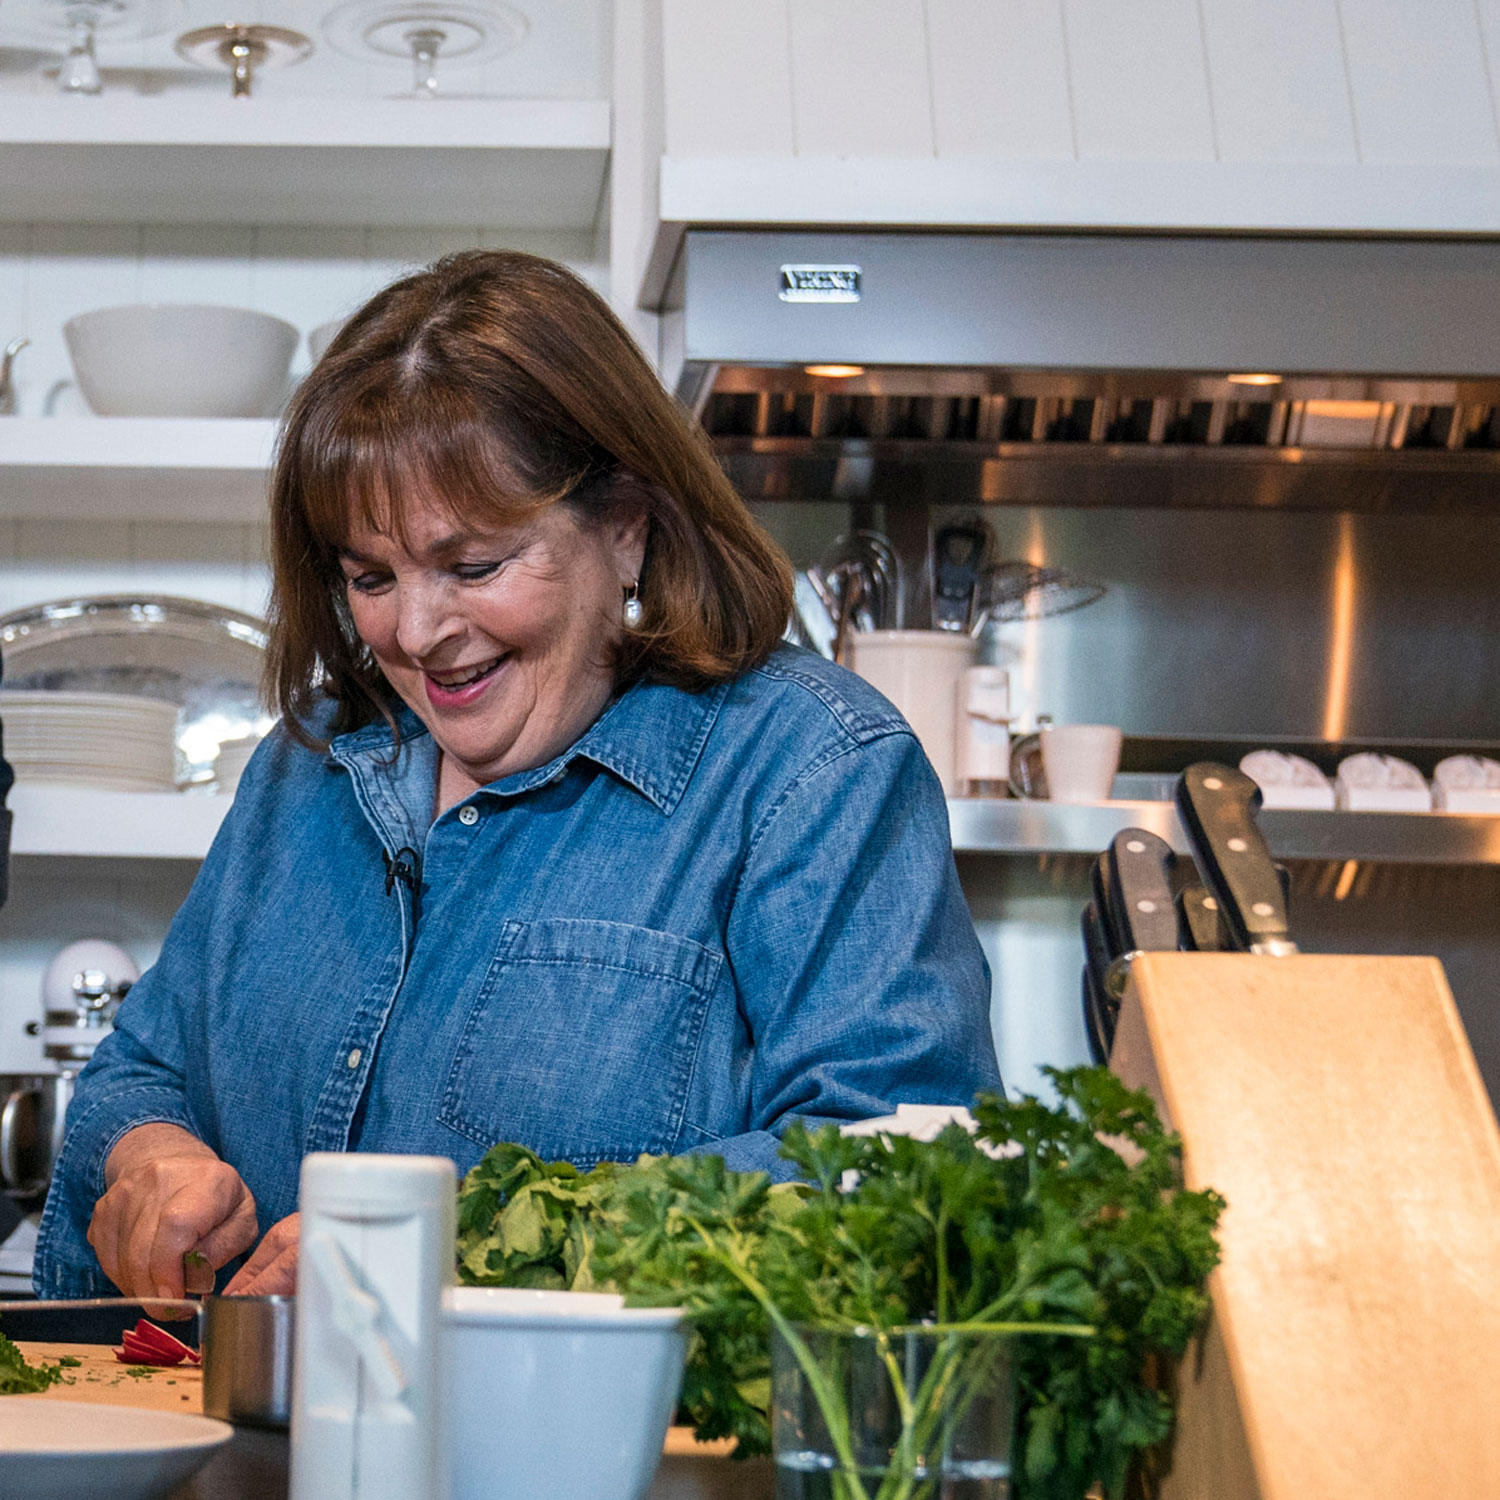 Ina Garten and I Have the Same Favorite Kitchen Knife, and I've Never Felt So Validated